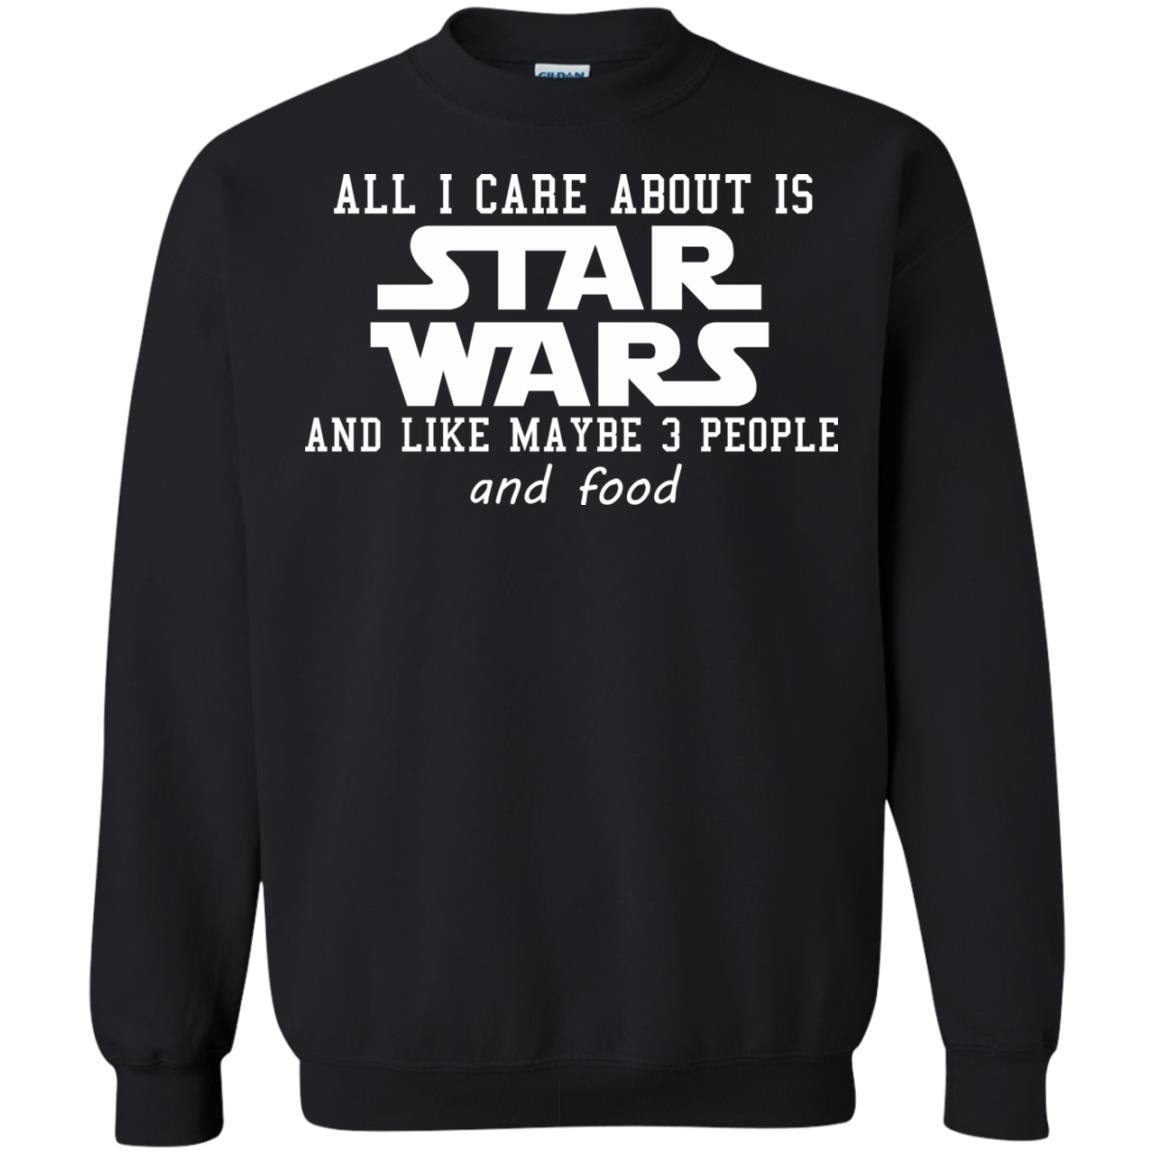 image 607 - All I care about is Star Wars & like maybe 3 people & food